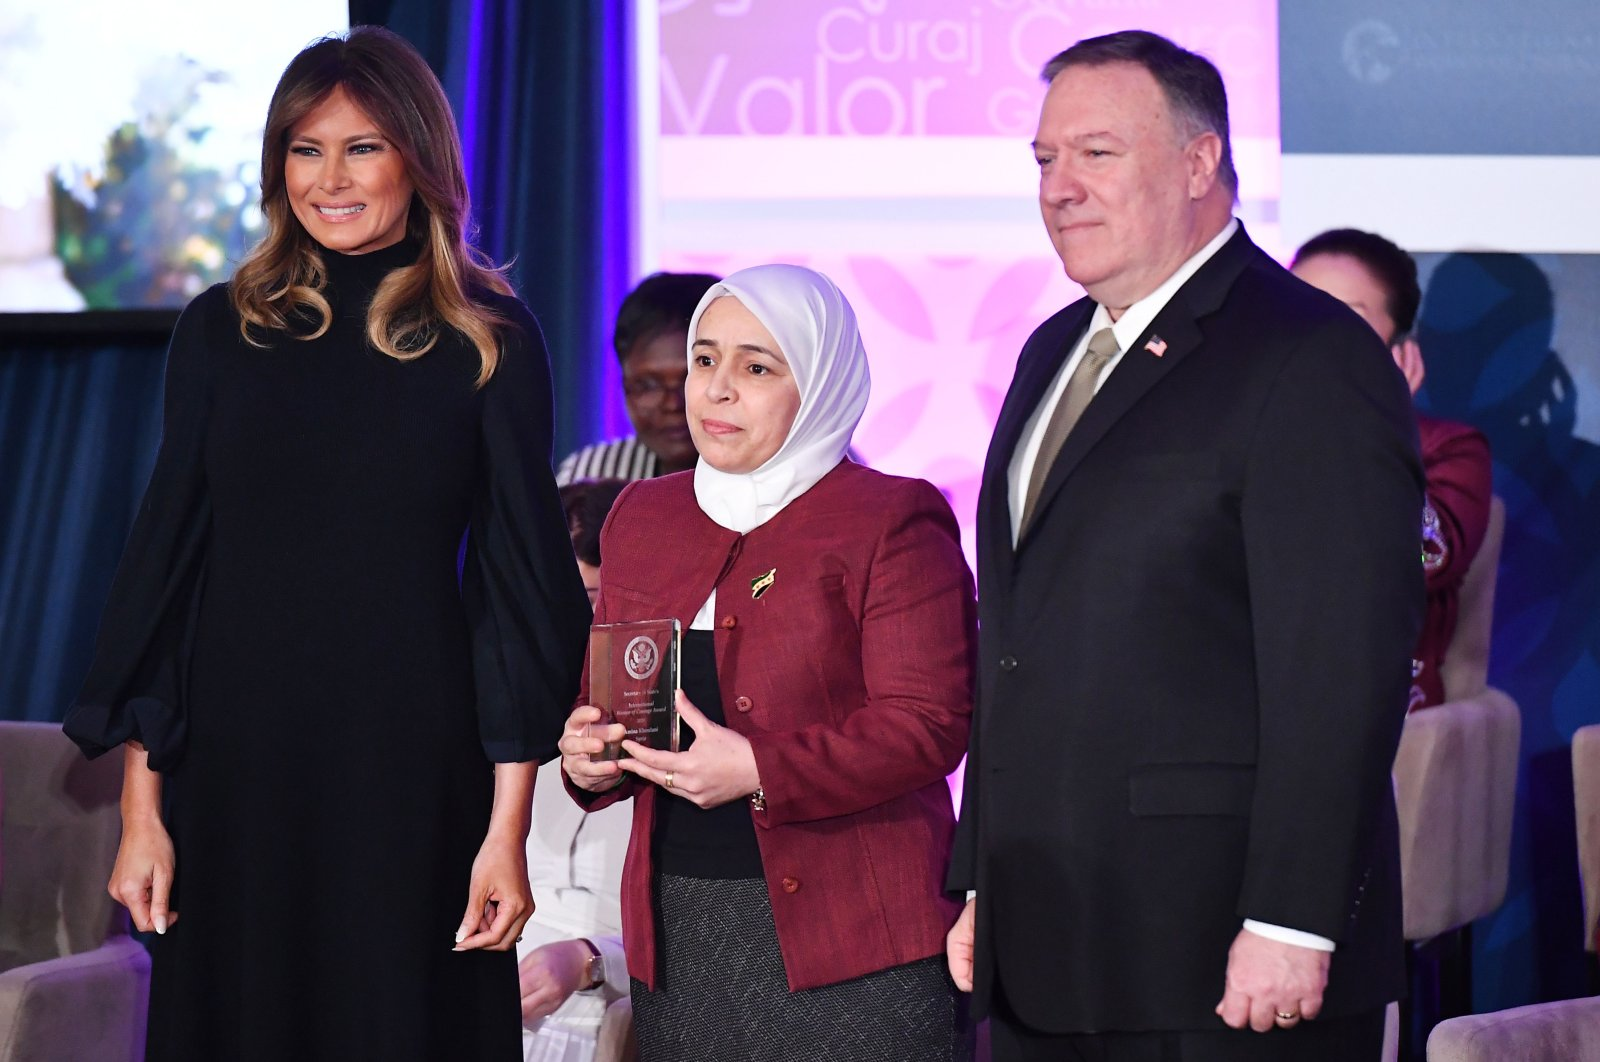 International Women of Courage (IWOC) Award recipient Amina Khoulani of Syria poses with US Secretary of State Mike Pompeo and First Lady Melania Trump at the State Department in Washington, DC on March 4, 2020. (AFP Photo)